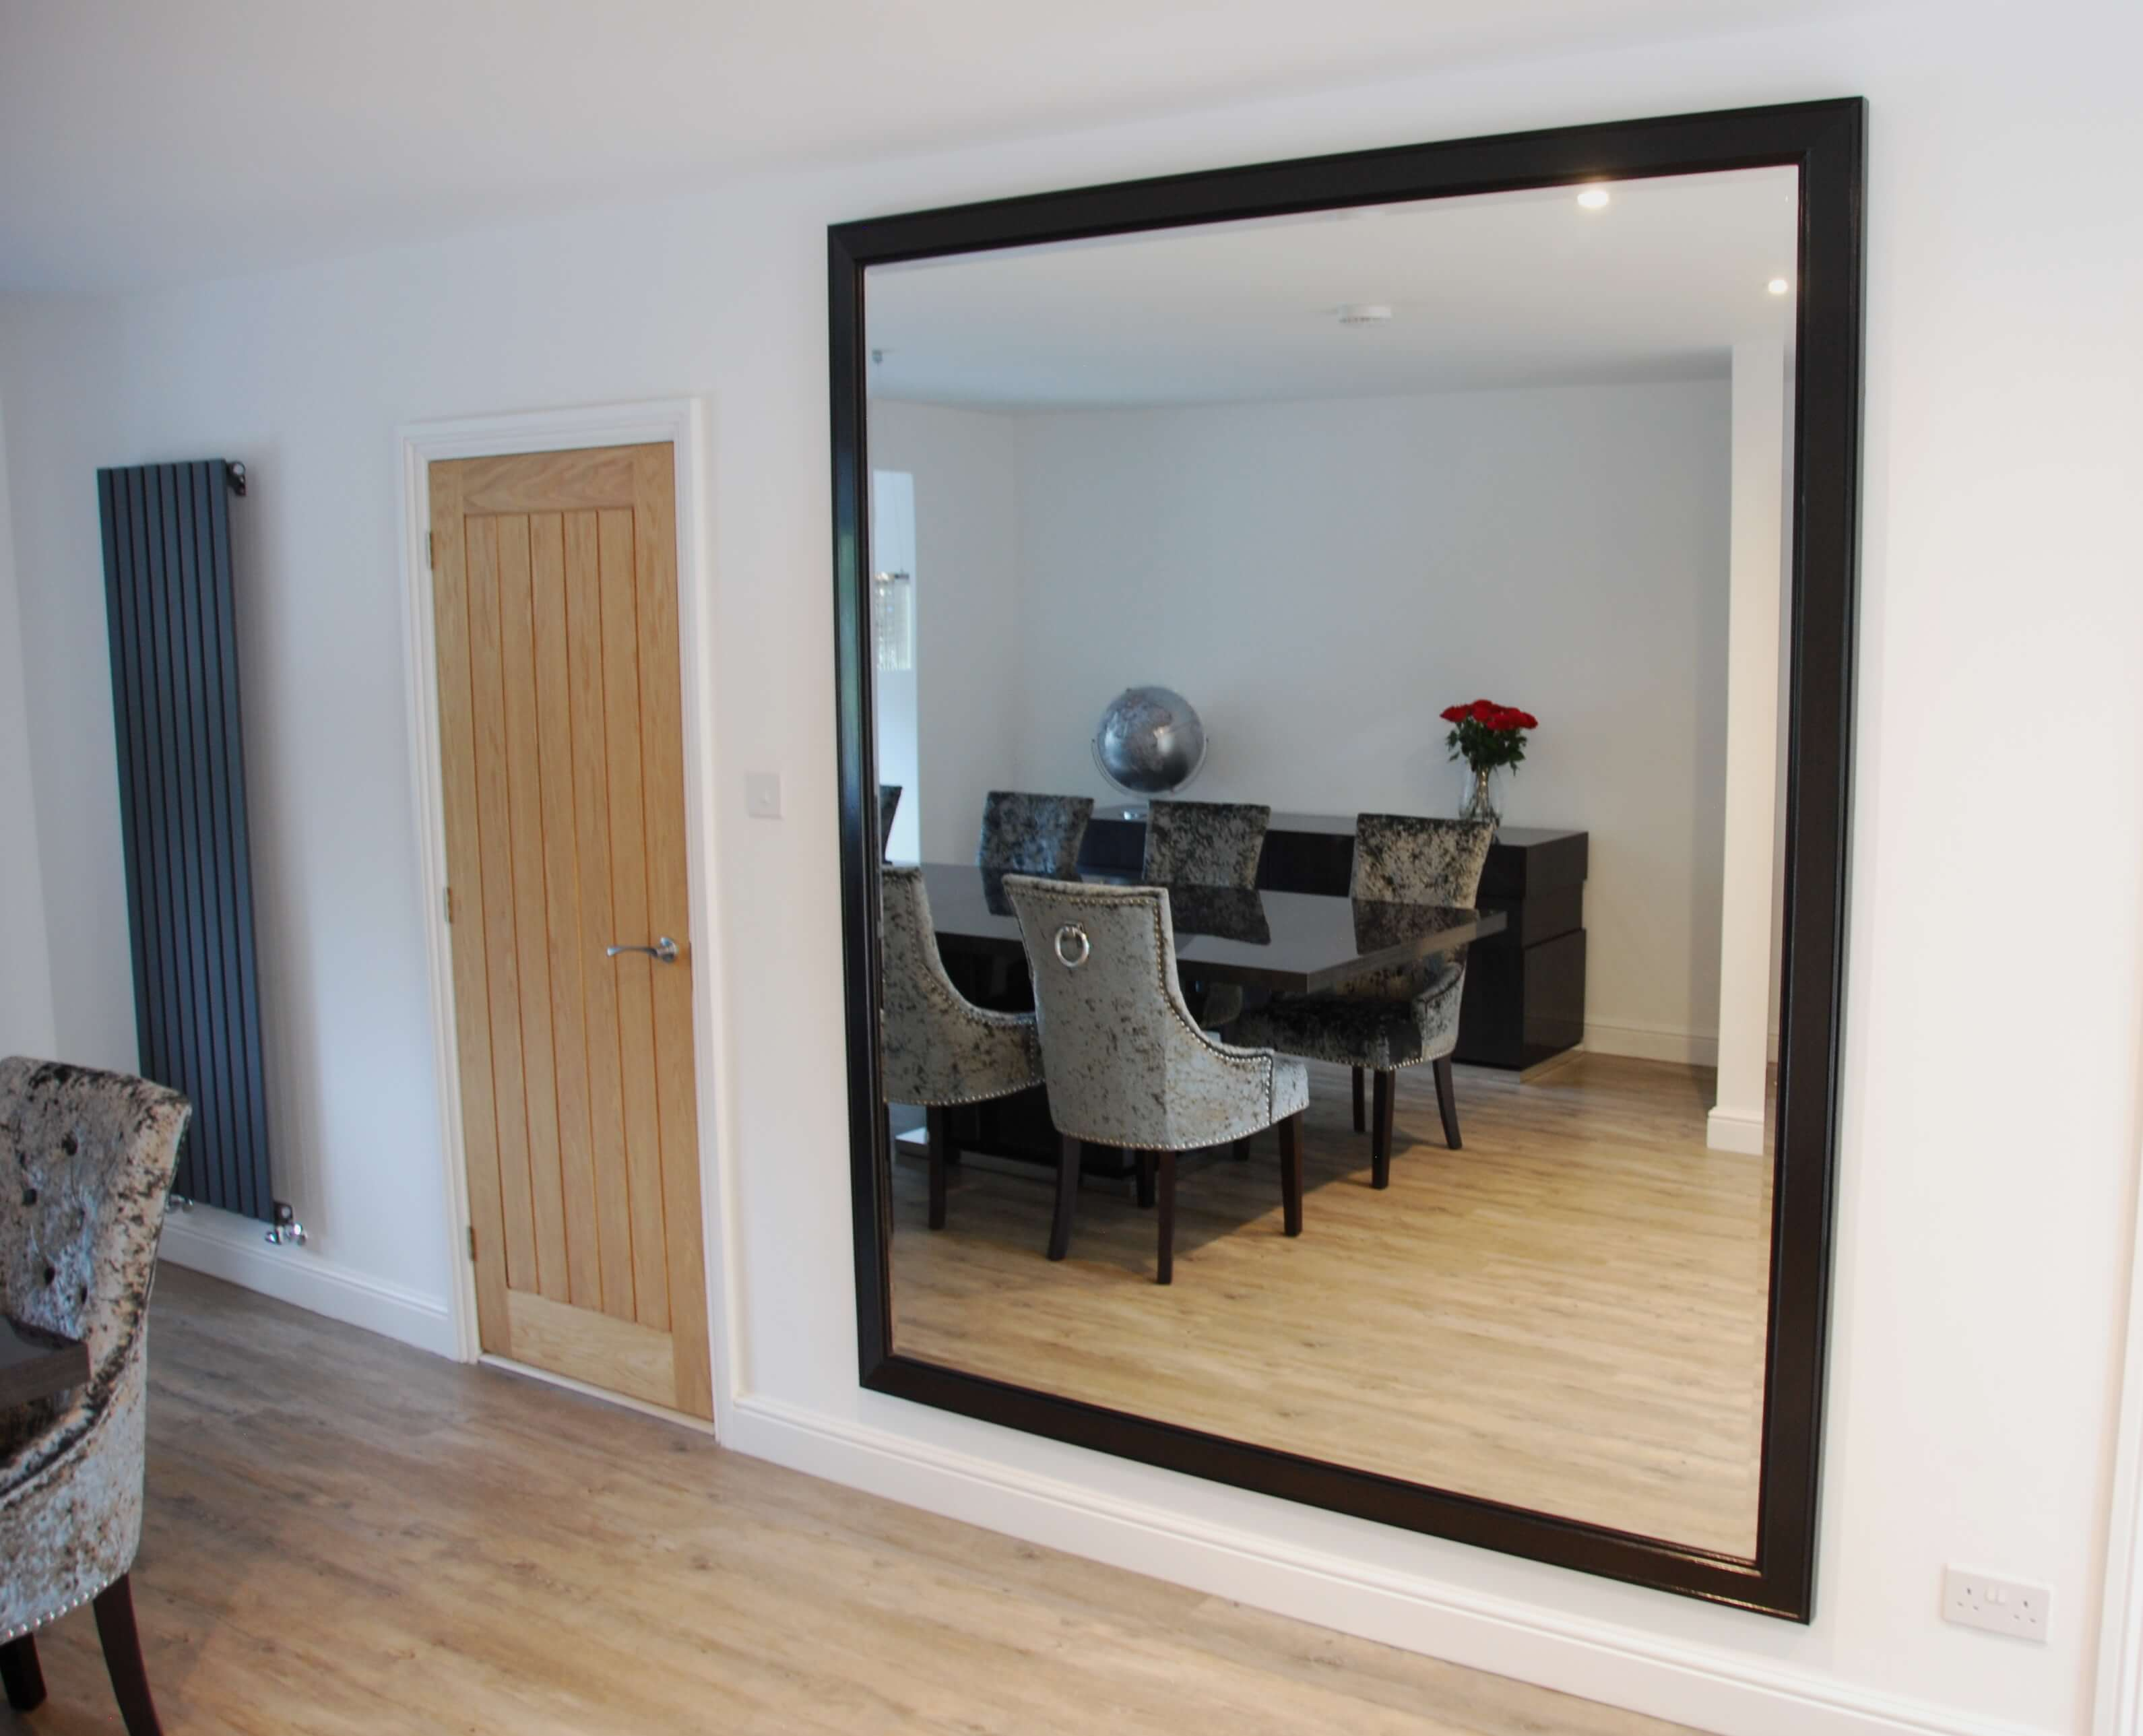 Crafting a large, bespoke mirror